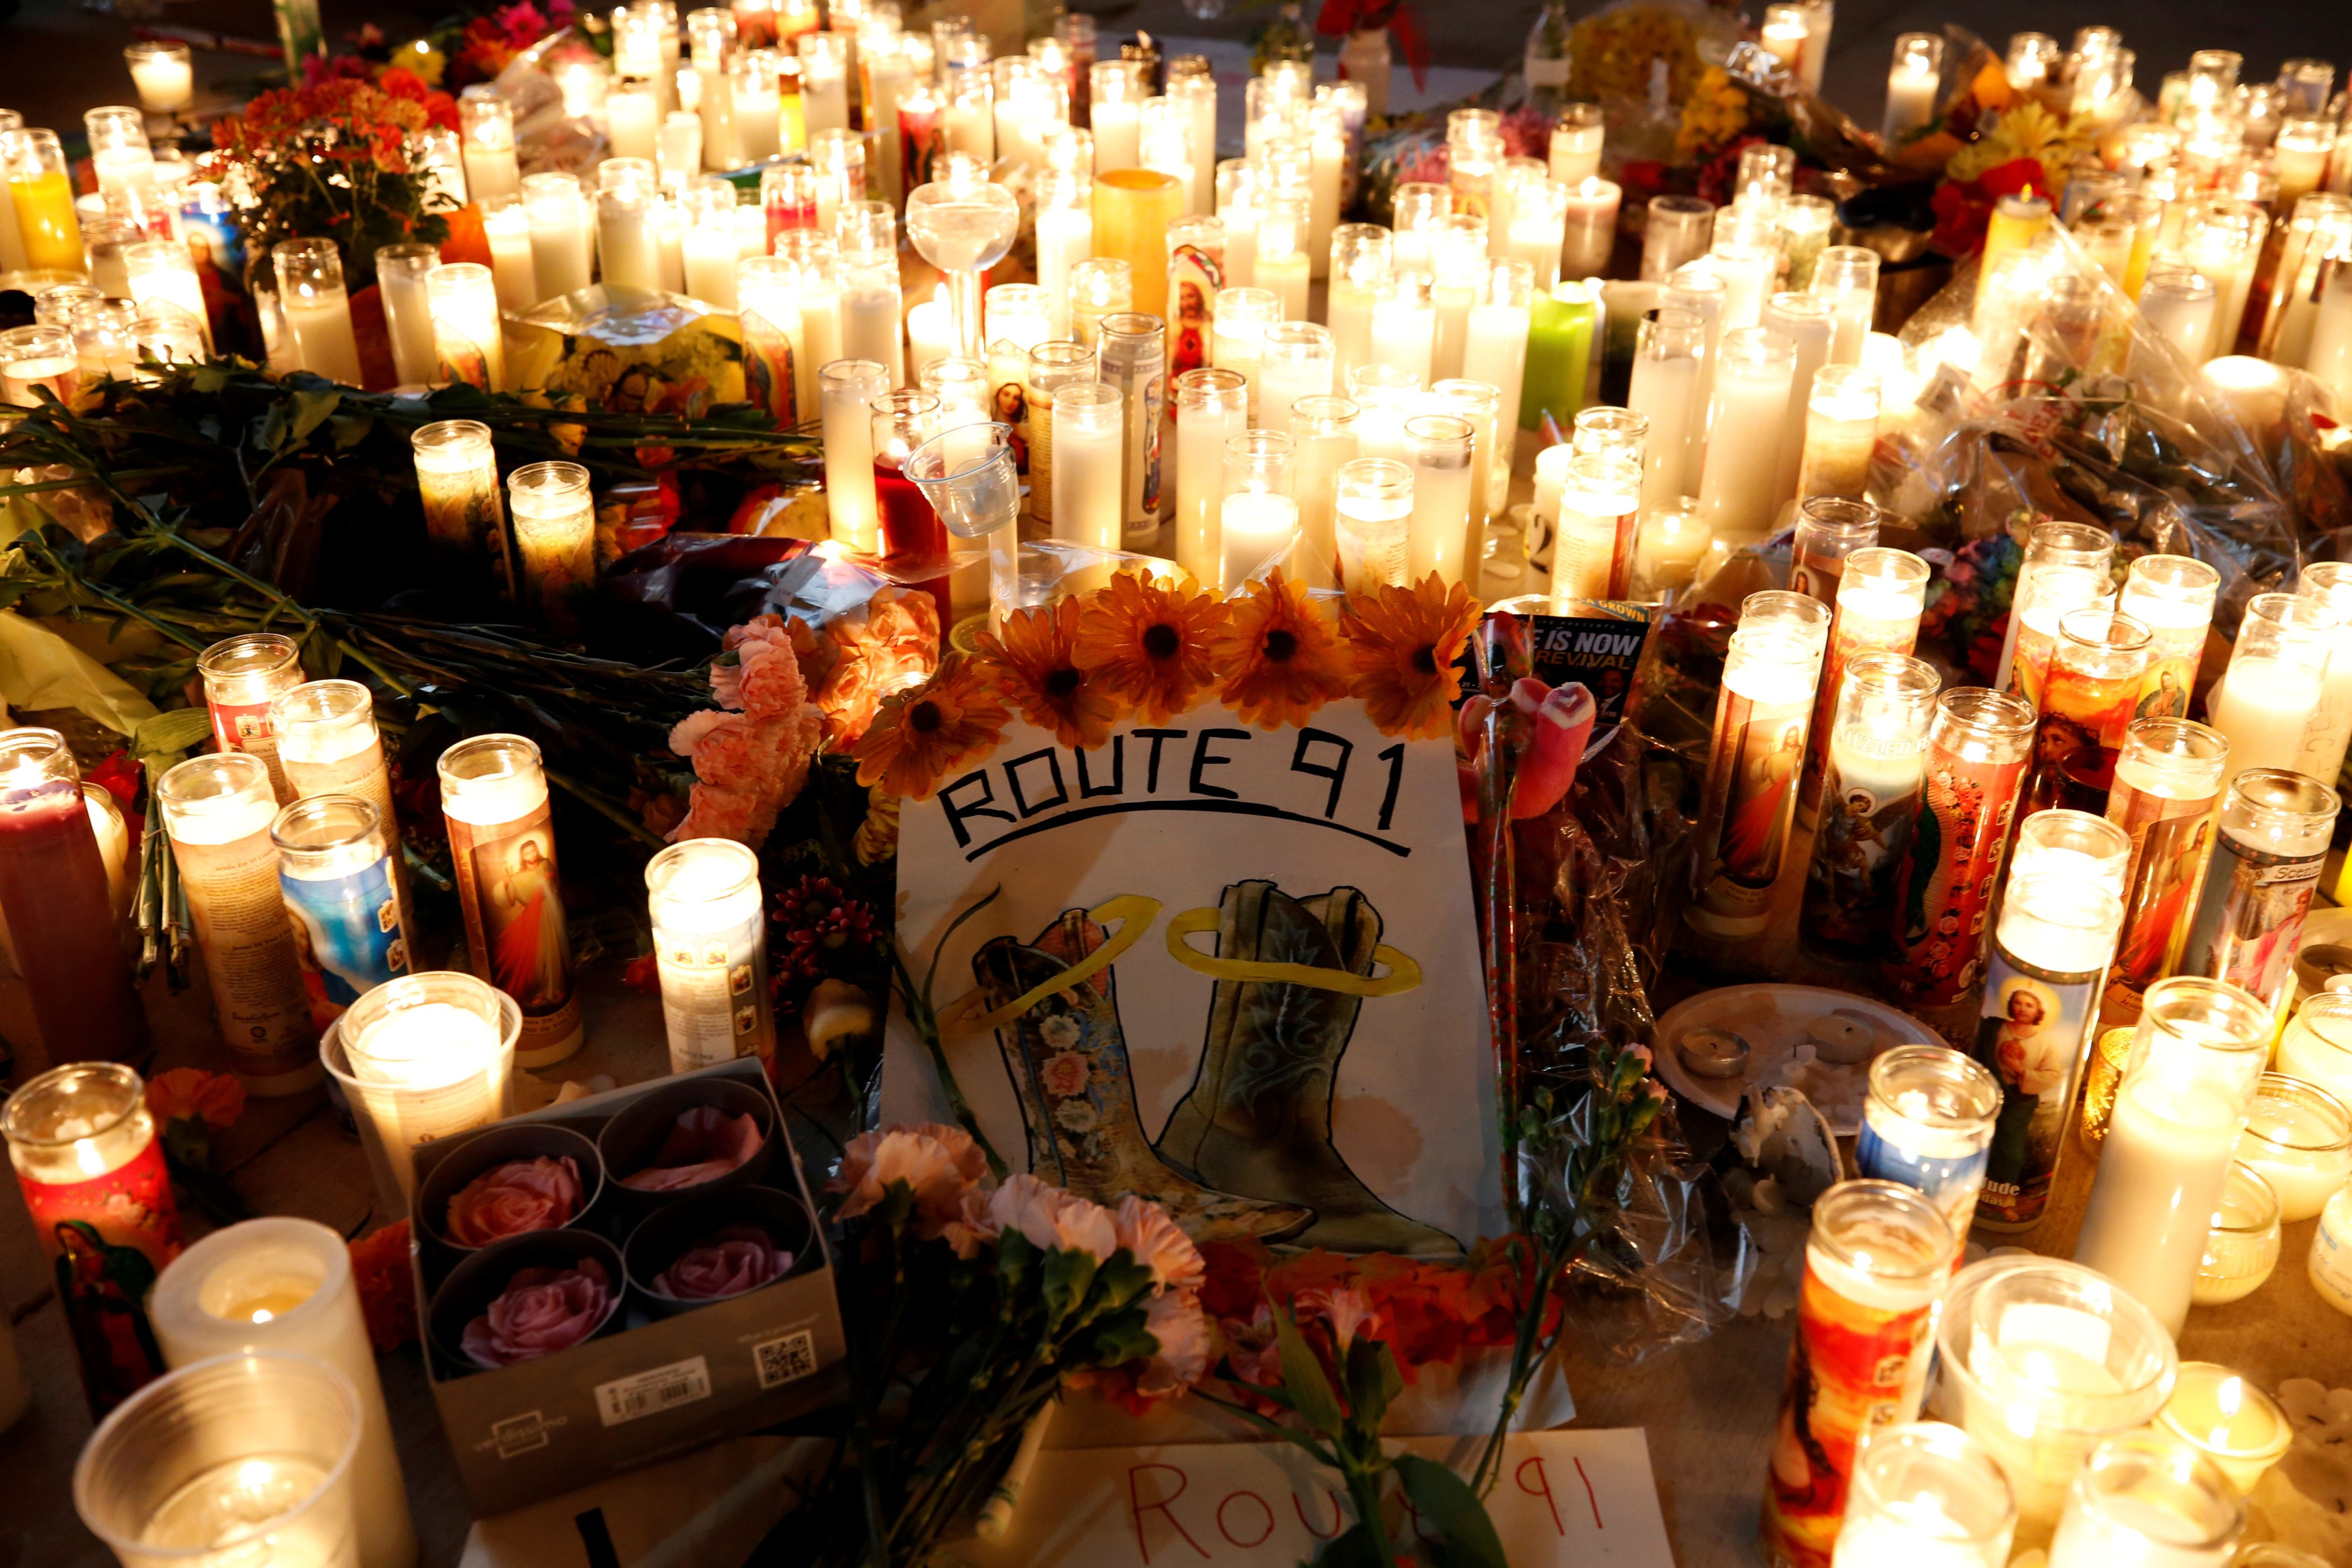 Slide 1 of 31: A candlelight vigil is pictured on the Las Vegas strip.